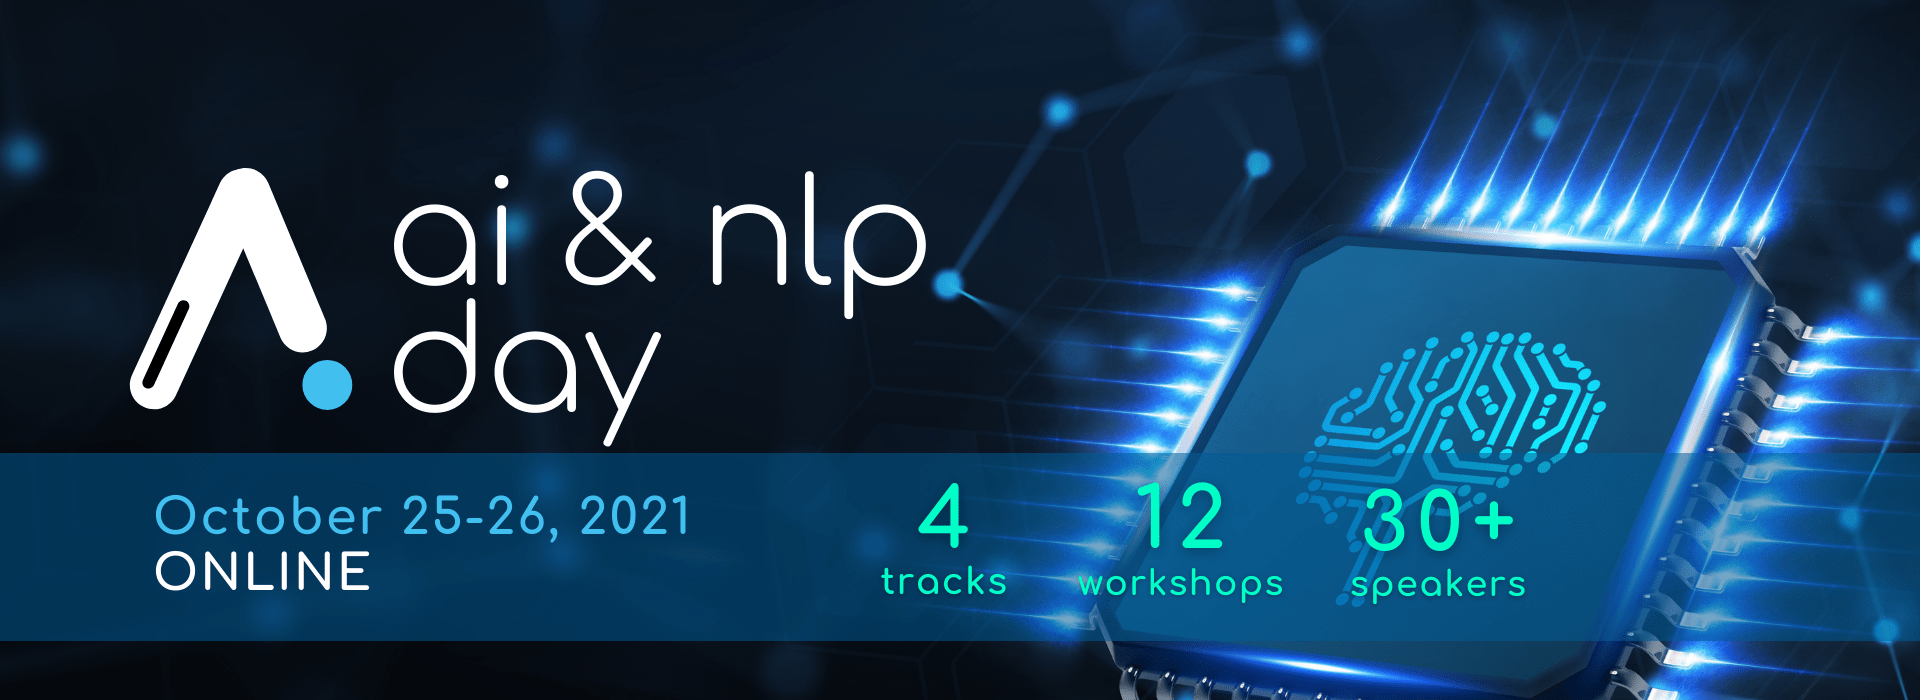 deepsense.ai together with Brainly toshare NLP insights at AI & NLP Day 2021